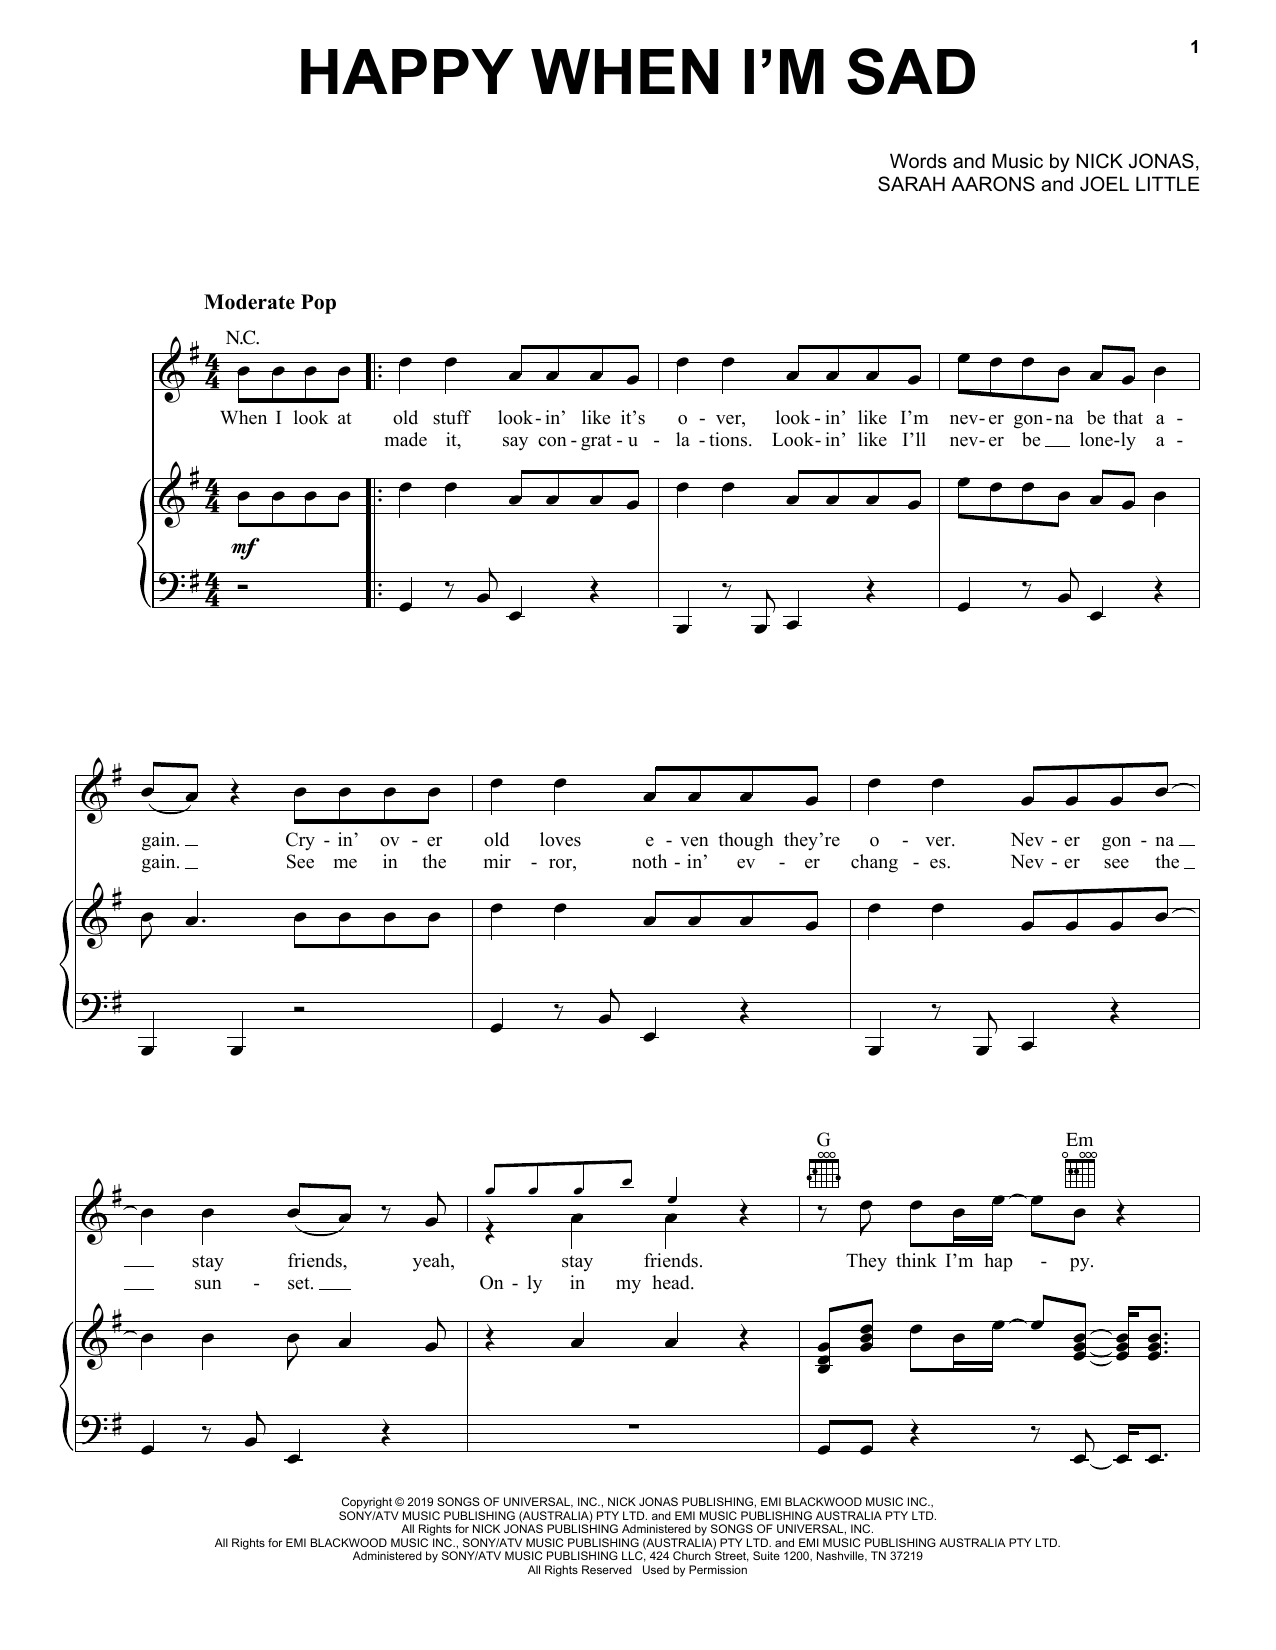 Jonas Brothers Happy When I'm Sad sheet music notes and chords. Download Printable PDF.